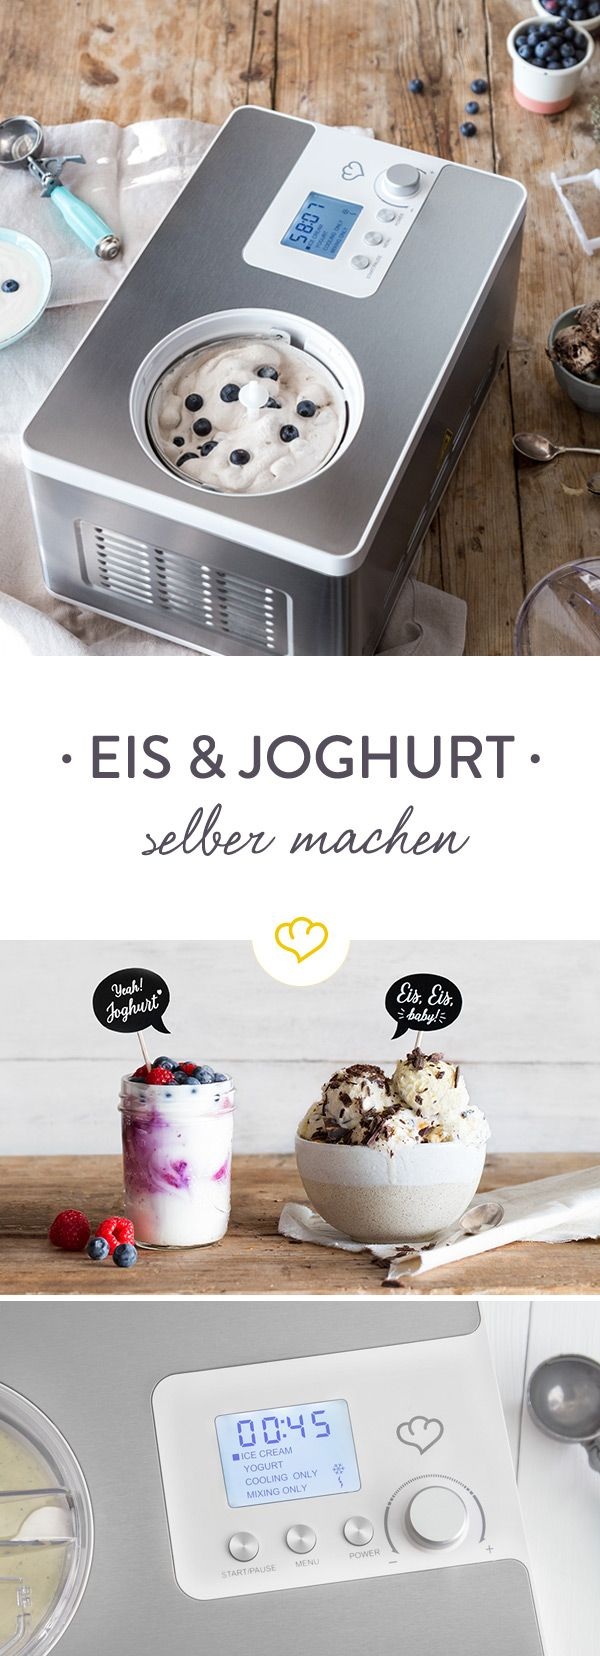 17 best images about die besten eis rezepte on pinterest popsicles kuchen and whisky. Black Bedroom Furniture Sets. Home Design Ideas